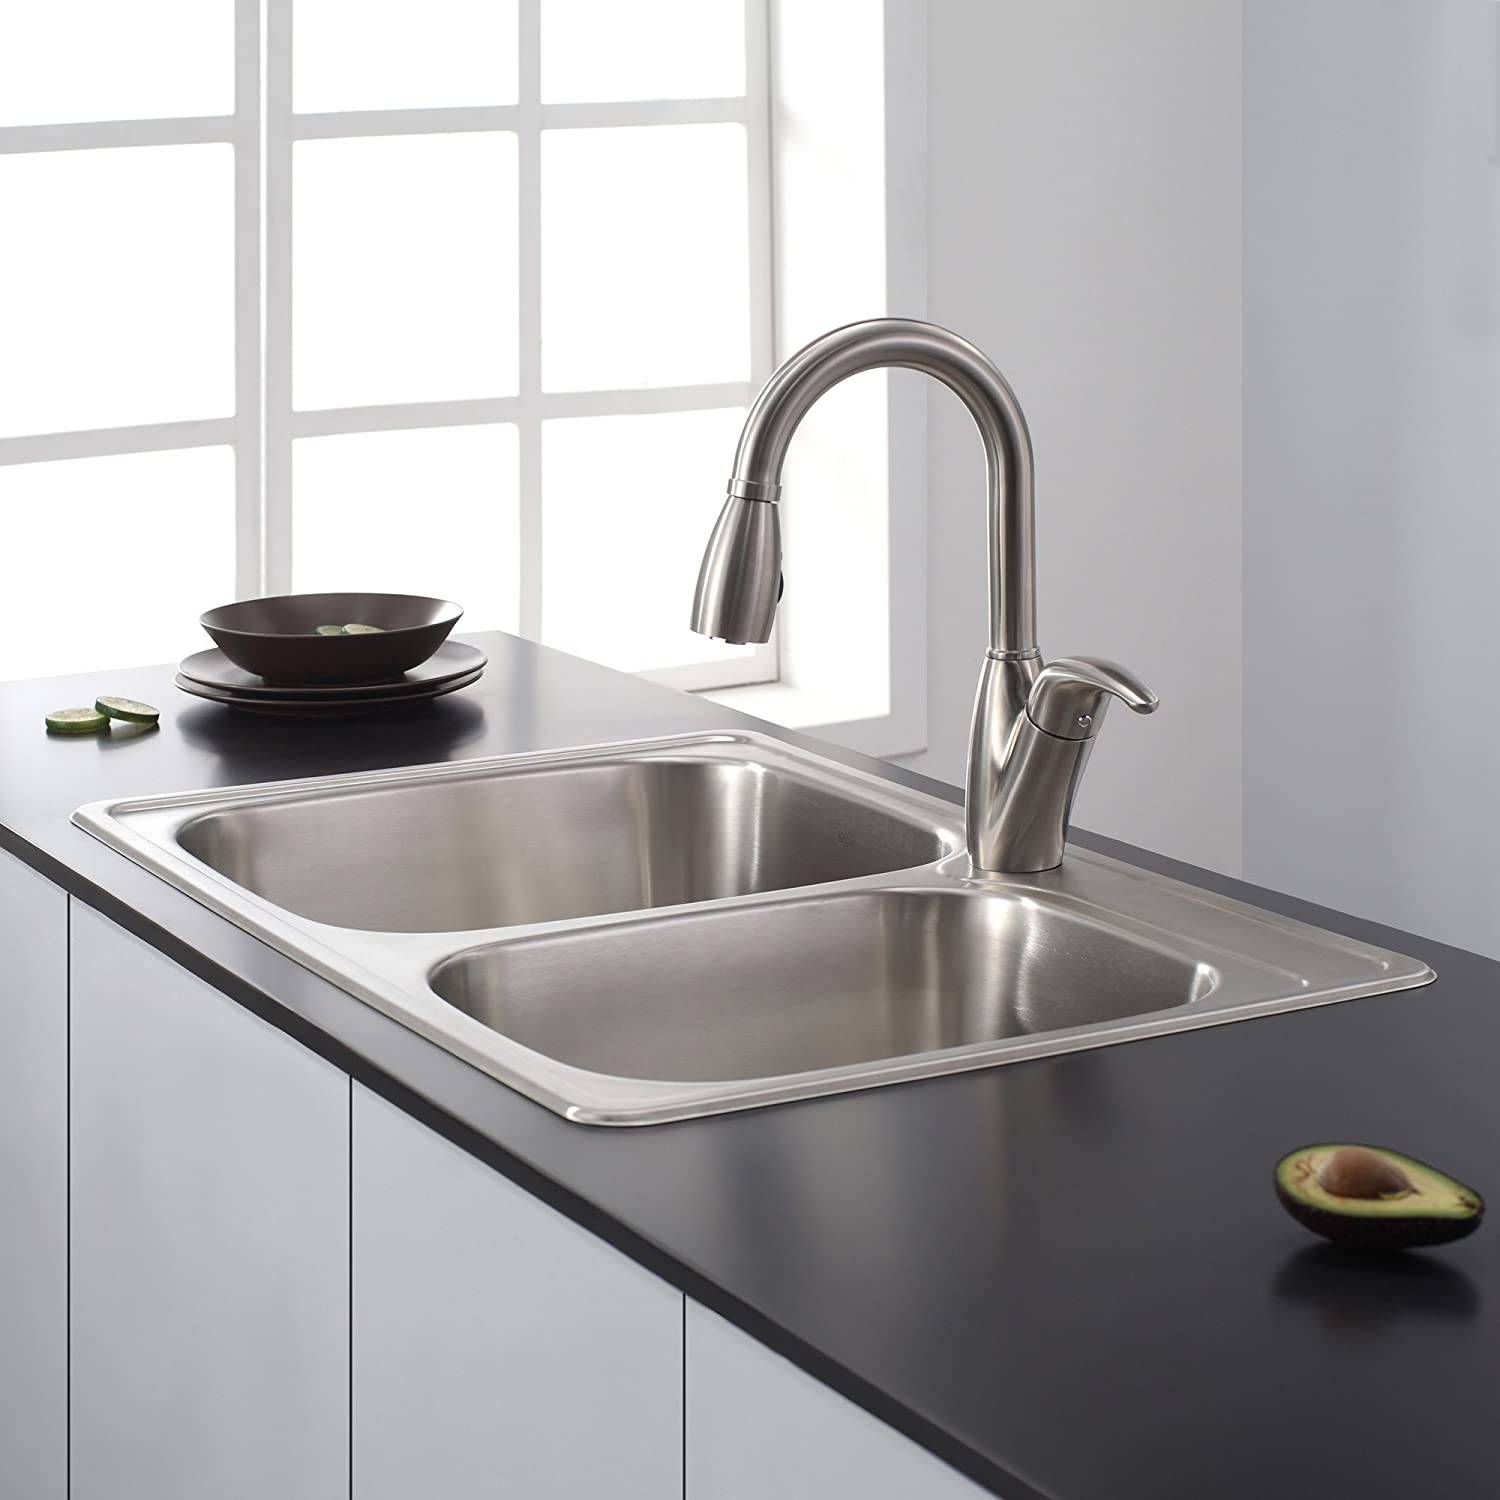 Kraus KTM32 33 Inch Topmount 60/40 Double Bowl 18 Gauge Stainless Steel  Kitchen Sink     Amazon.com